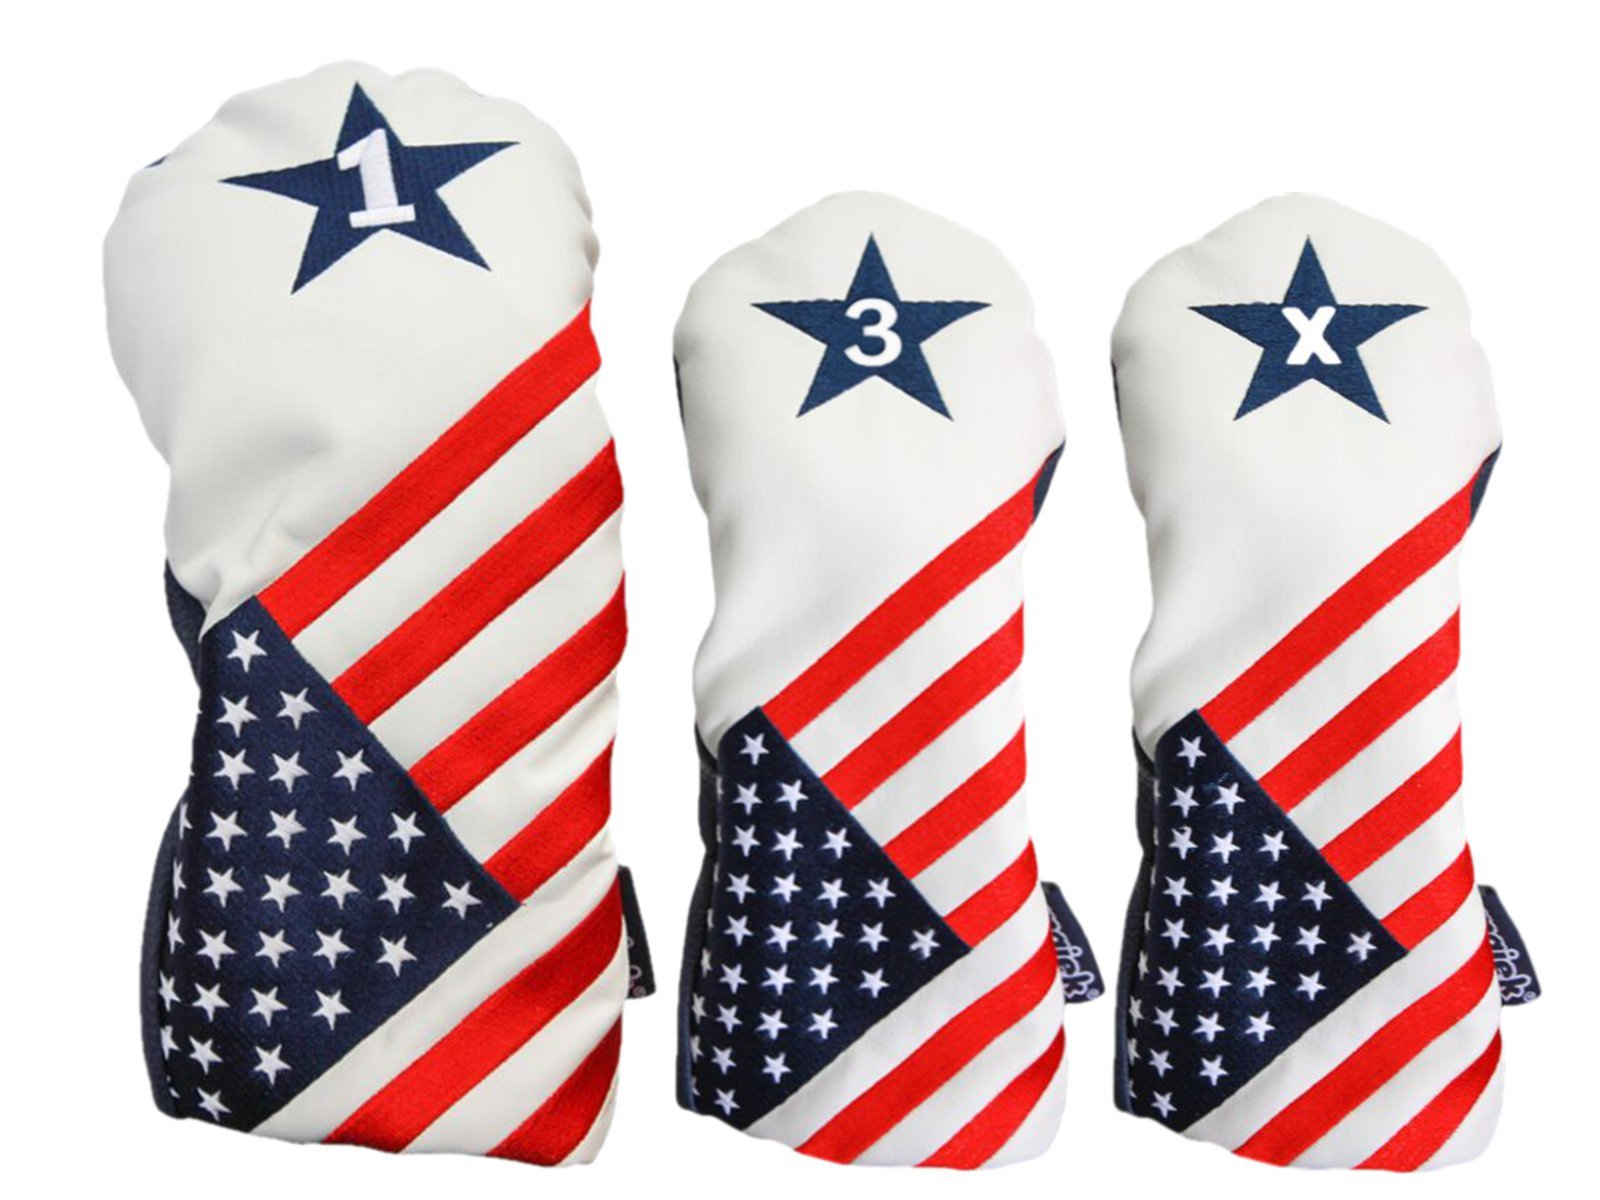 USA 1 3 X Golf Headcover Patriot Vintage Retro Patriotic Driver Fairway Wood Head Cover by Majek USA Vintage Golf Driver Headcover (Image #1)